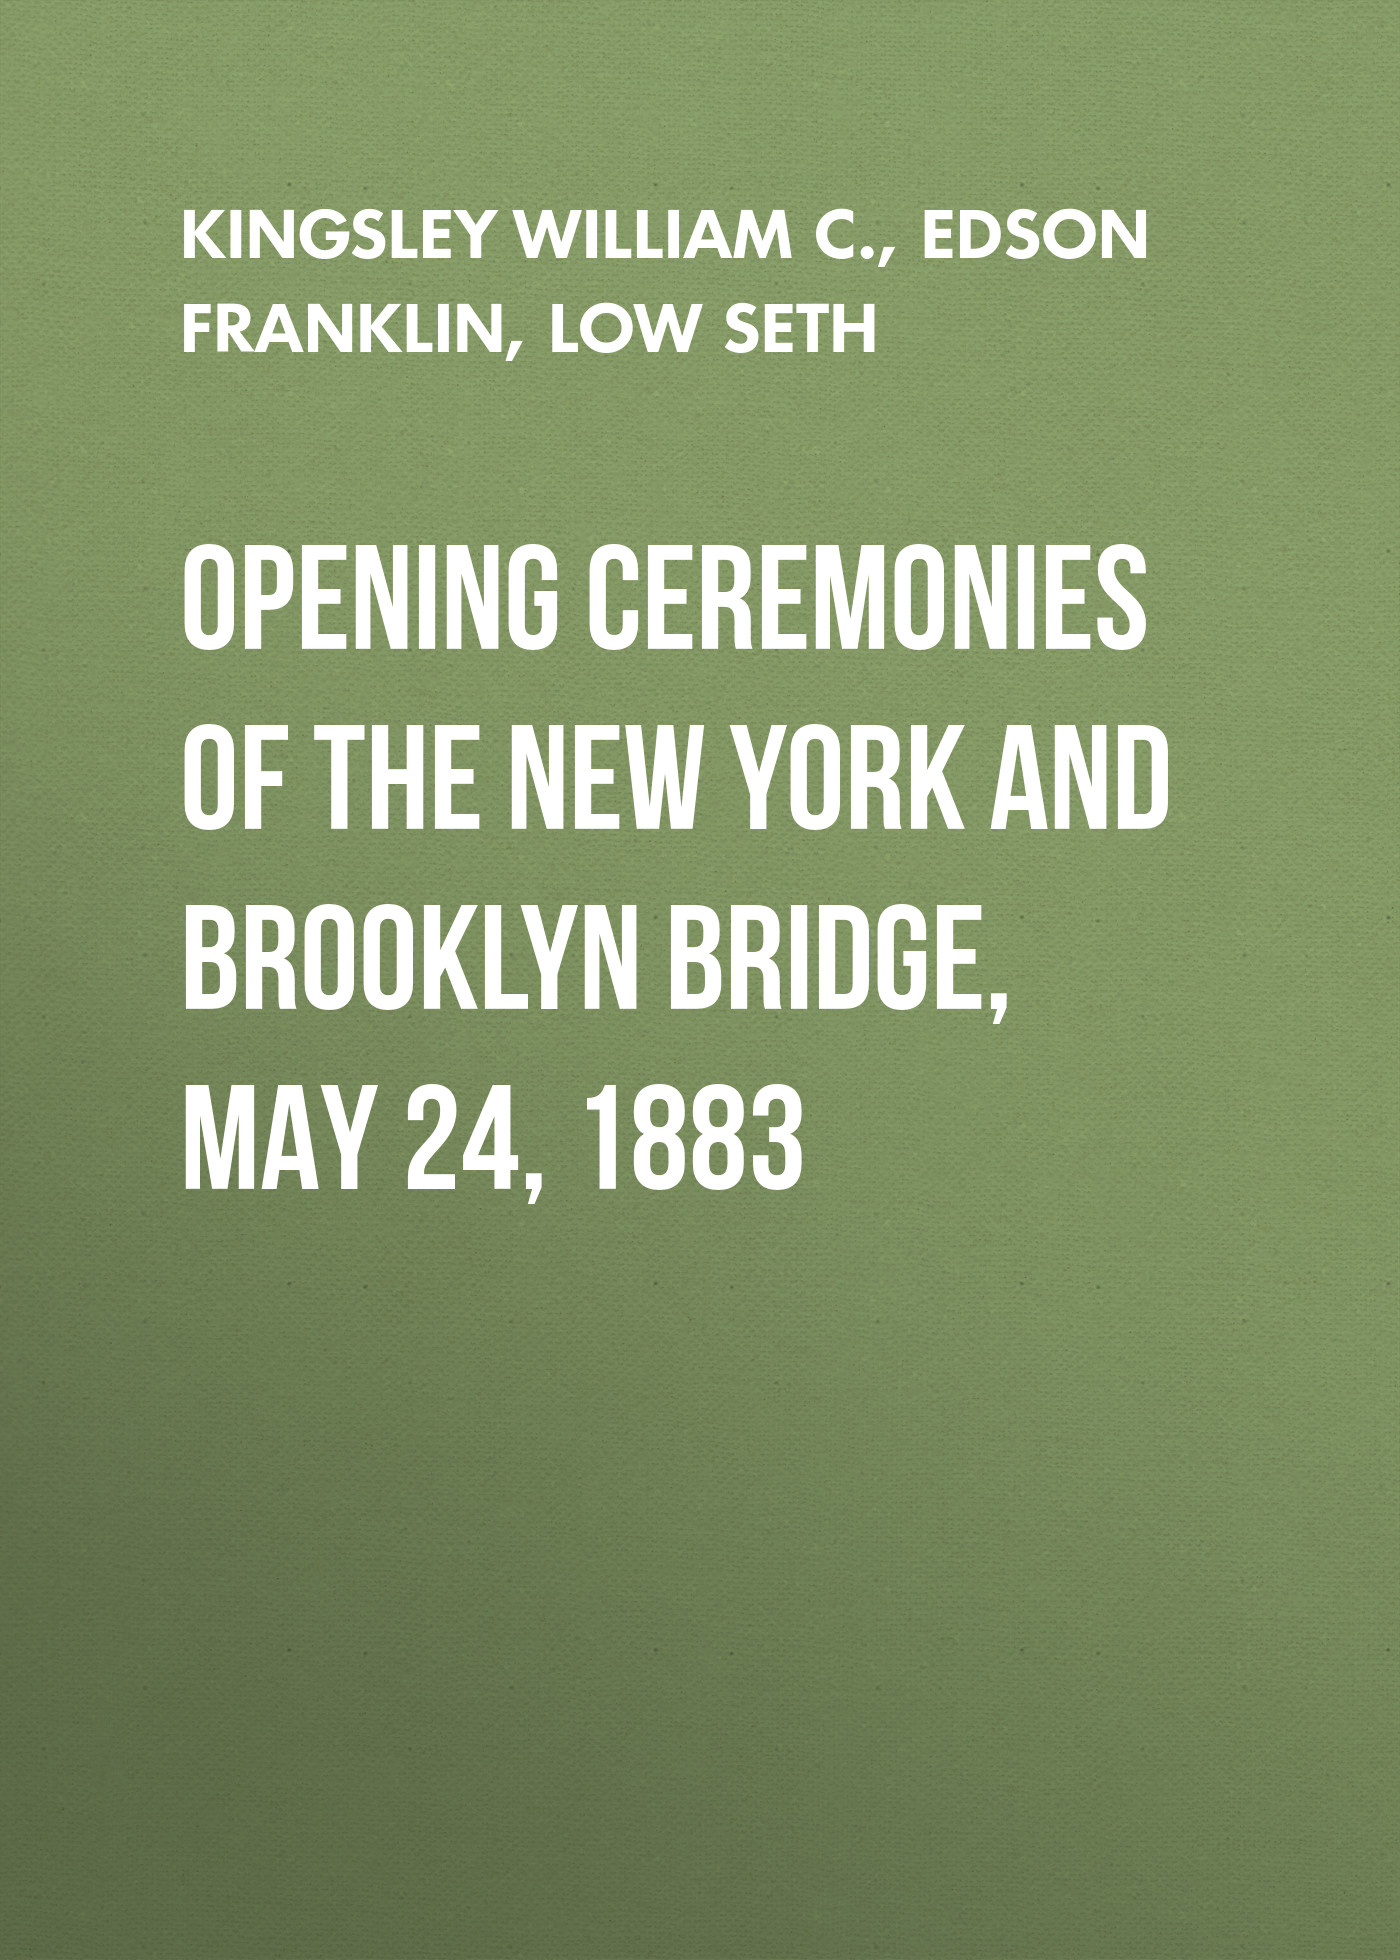 Opening Ceremonies of the New York and Brooklyn Bridge, May 24, 1883